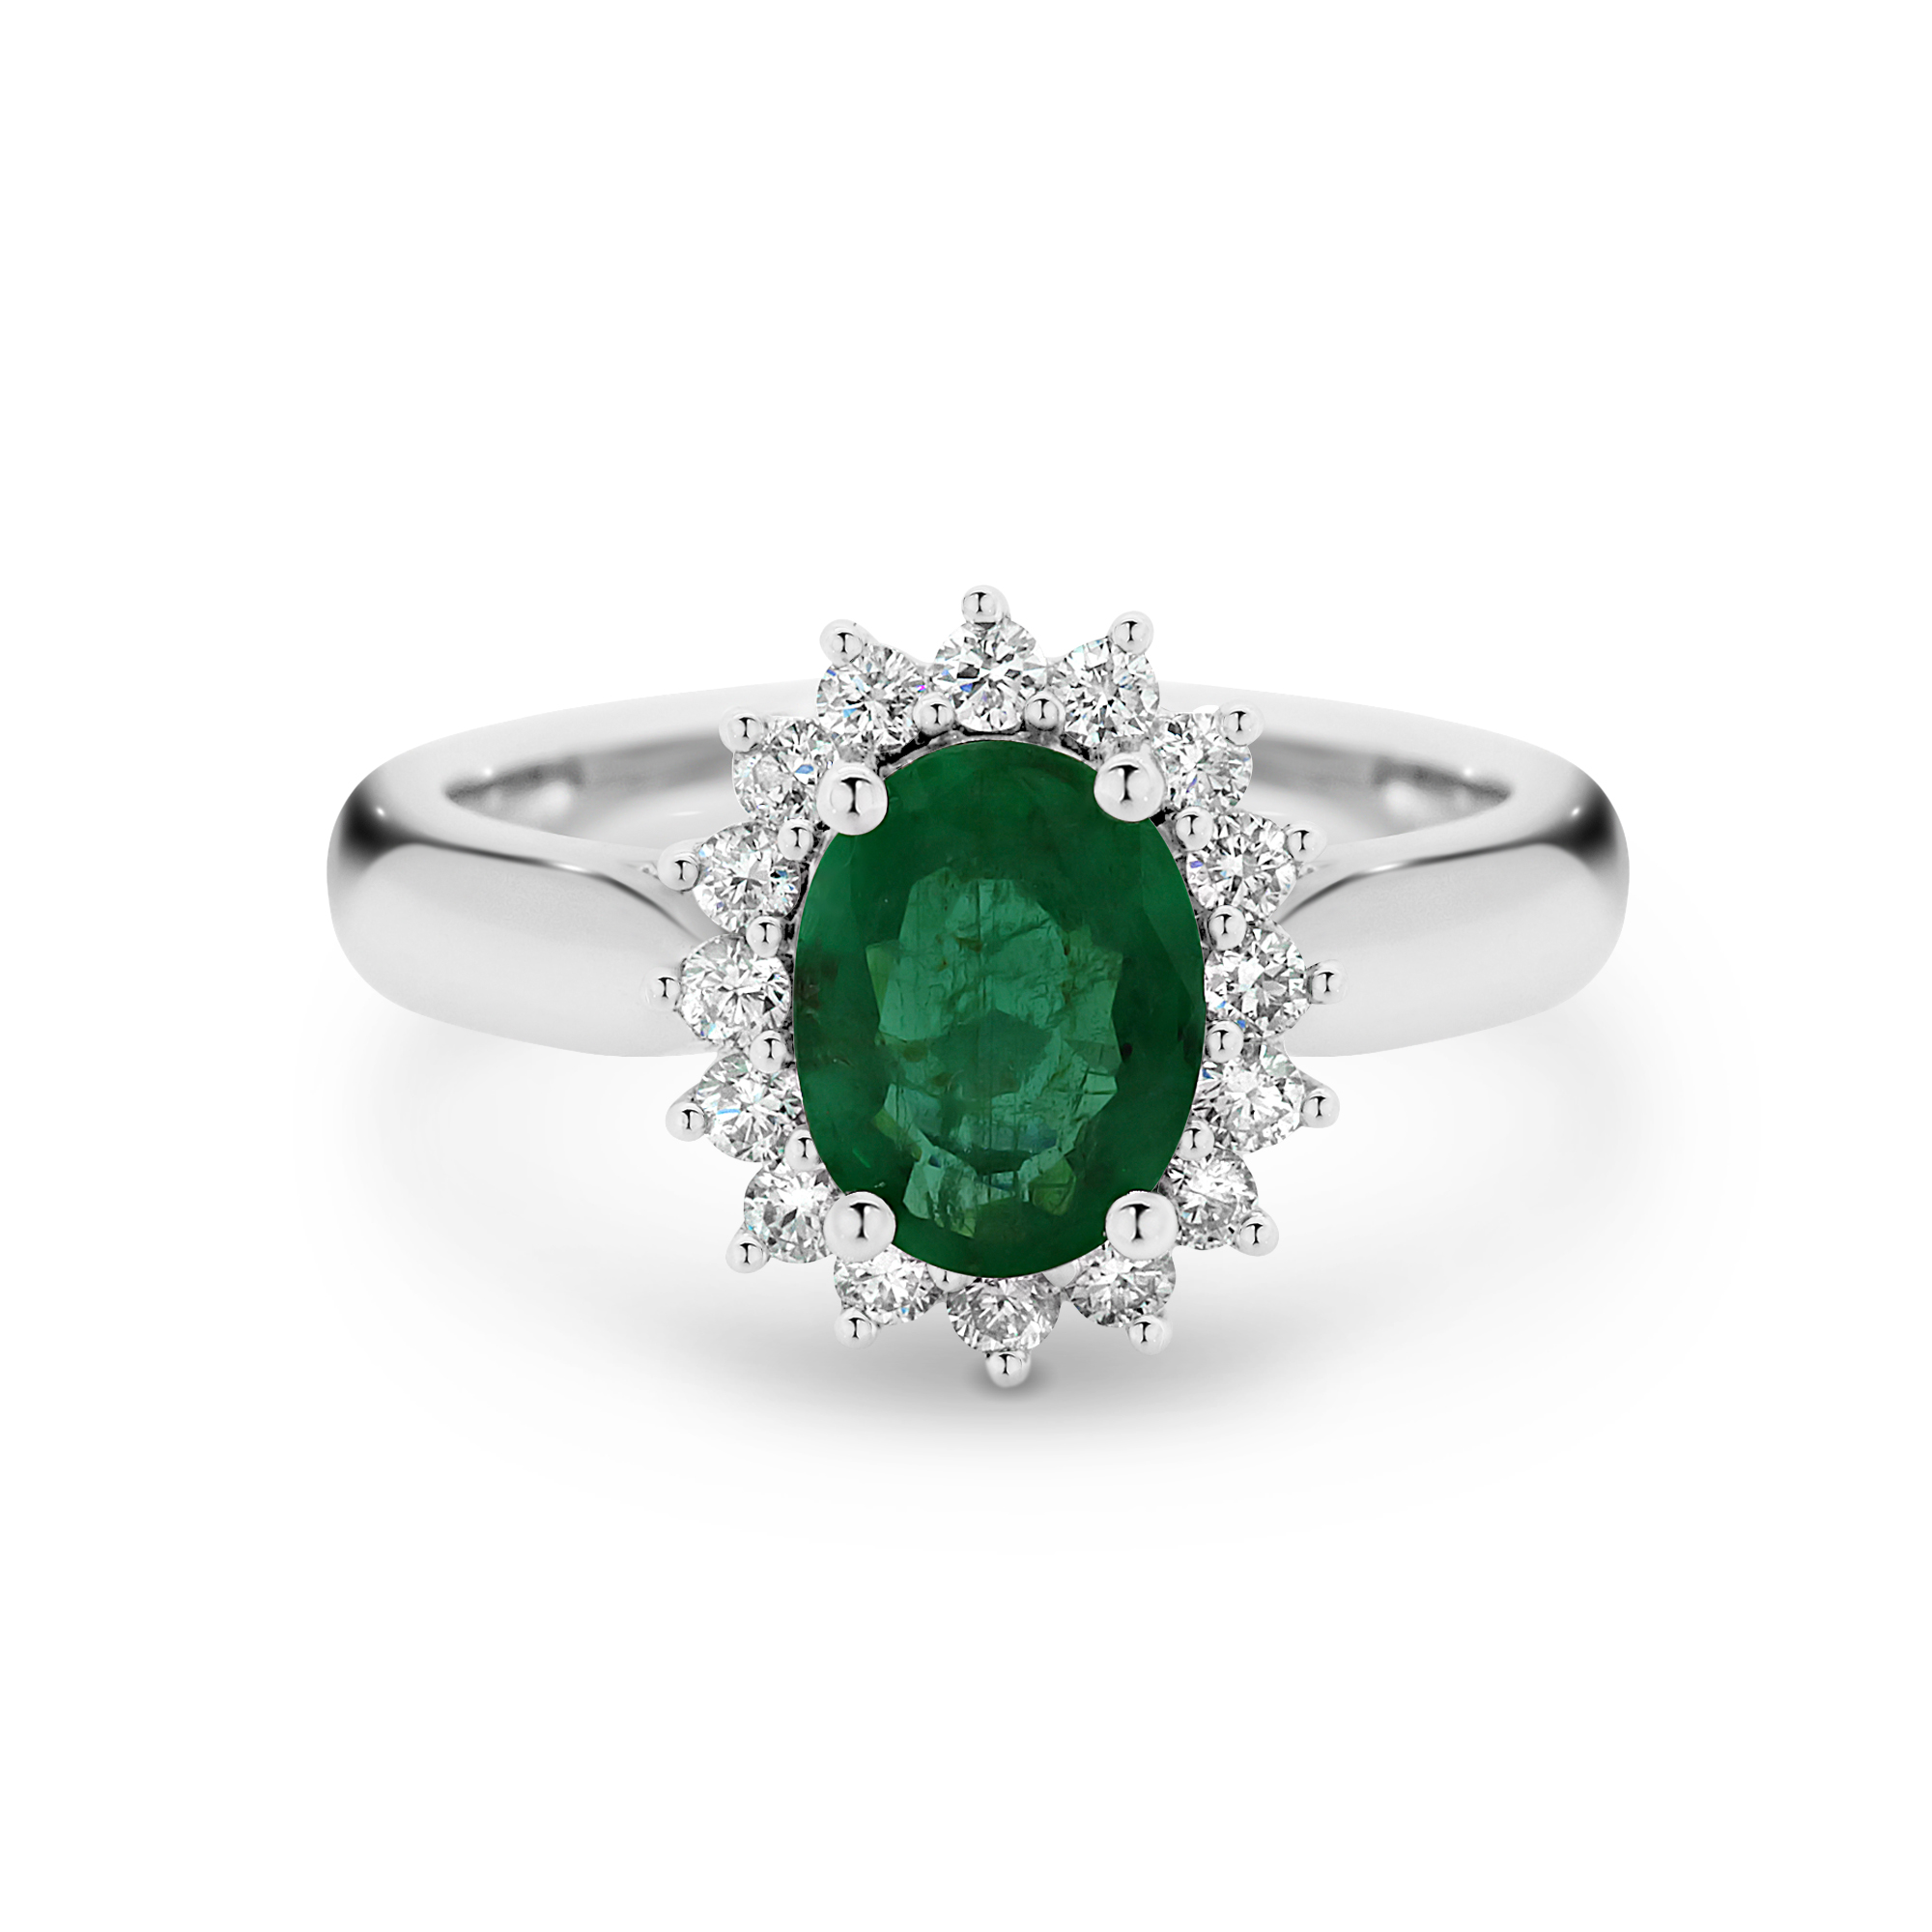 jewellers ring gold dia emerald product wedding and celtic s conway